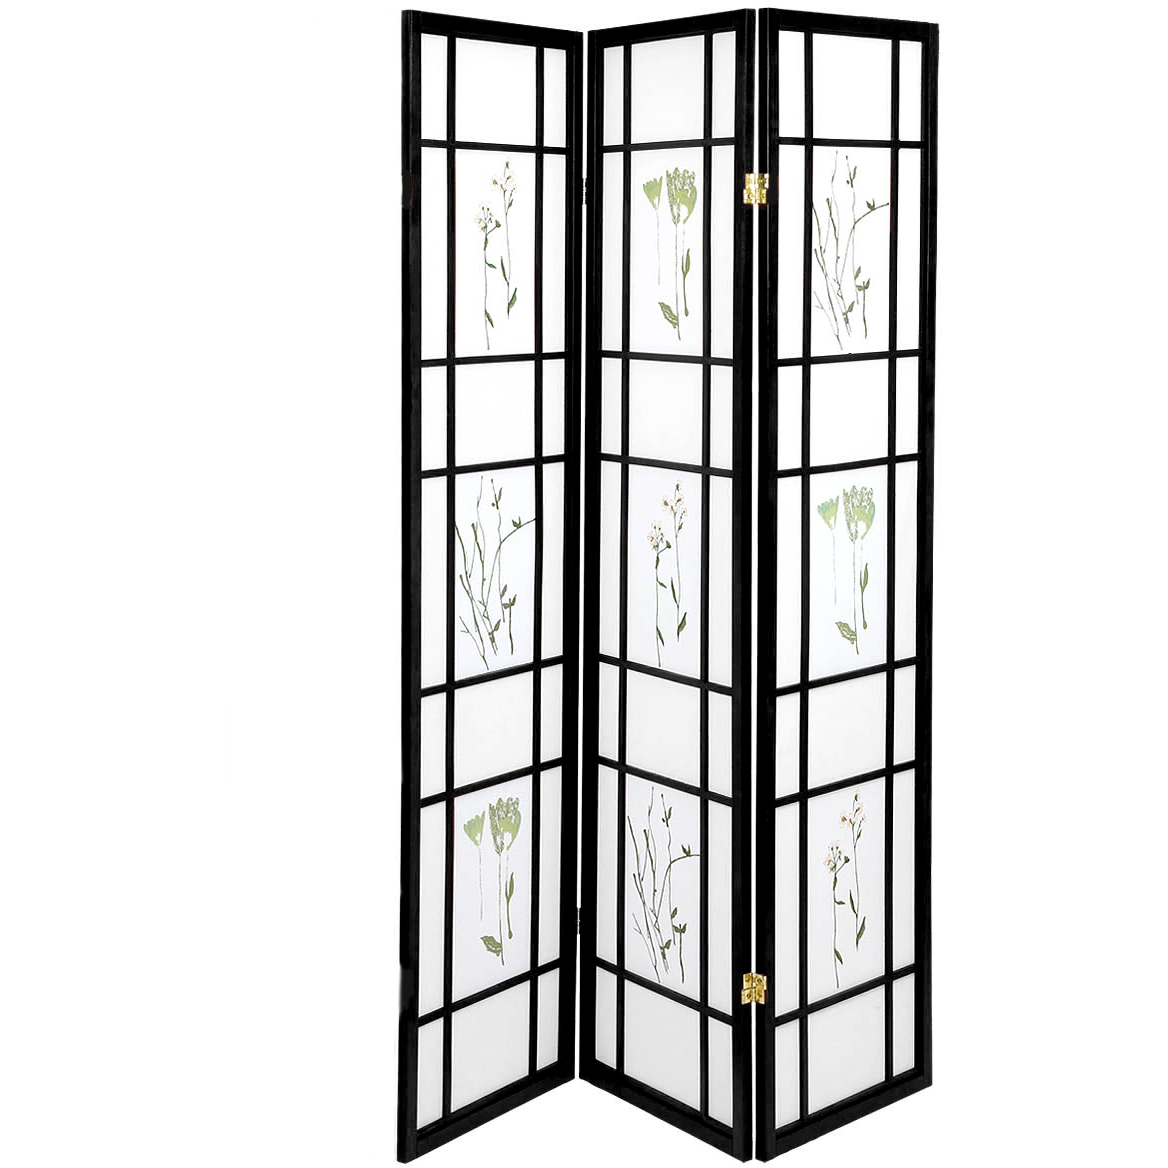 Shoji Folding Room Divider Screen Room Separator Partition Wall Hardwood Small Flowered Black Japanese Style 3 Panels